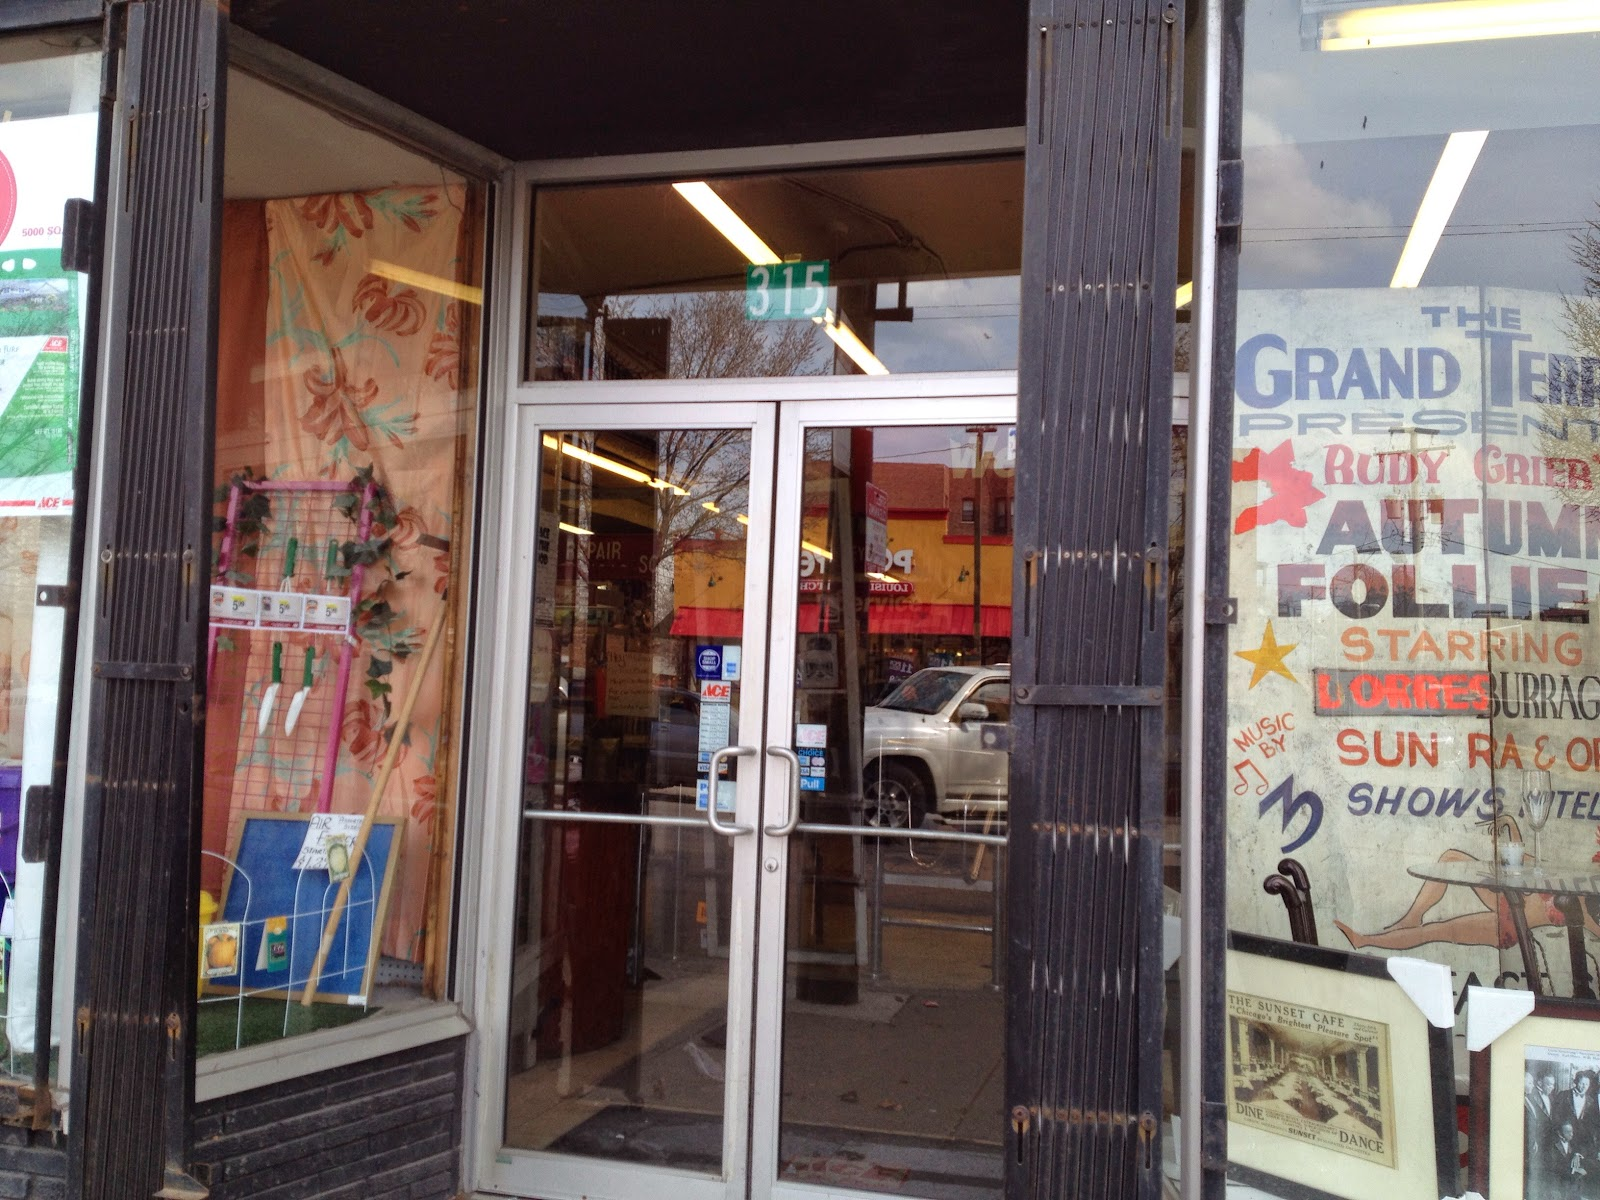 The Grand Terrace Sign in window of current Ace Hardware 315 East 35th Street Bronzeville